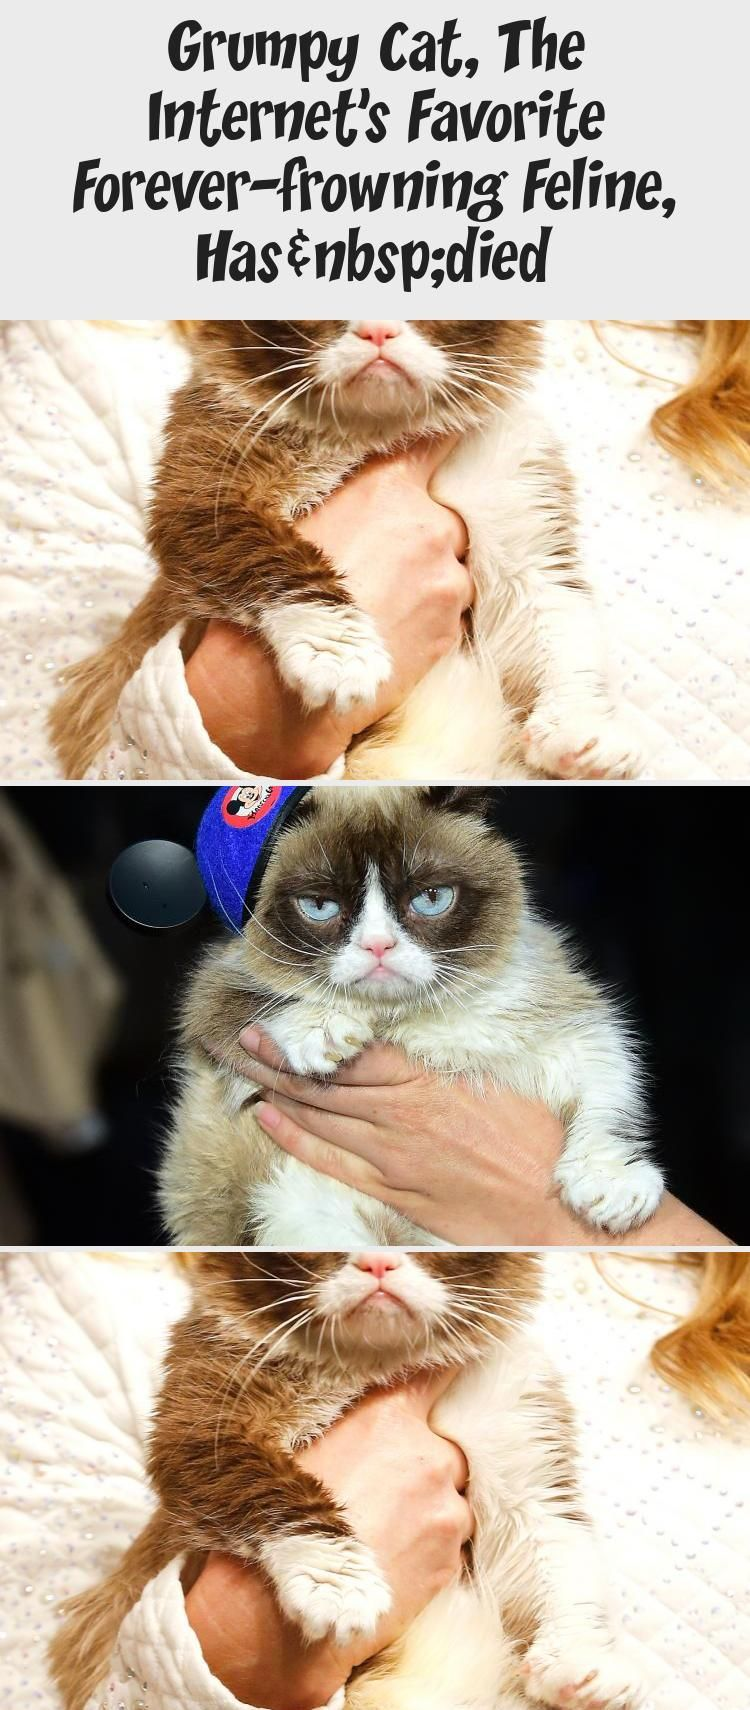 Grumpy Cat, The Favorite Foreverfrowning